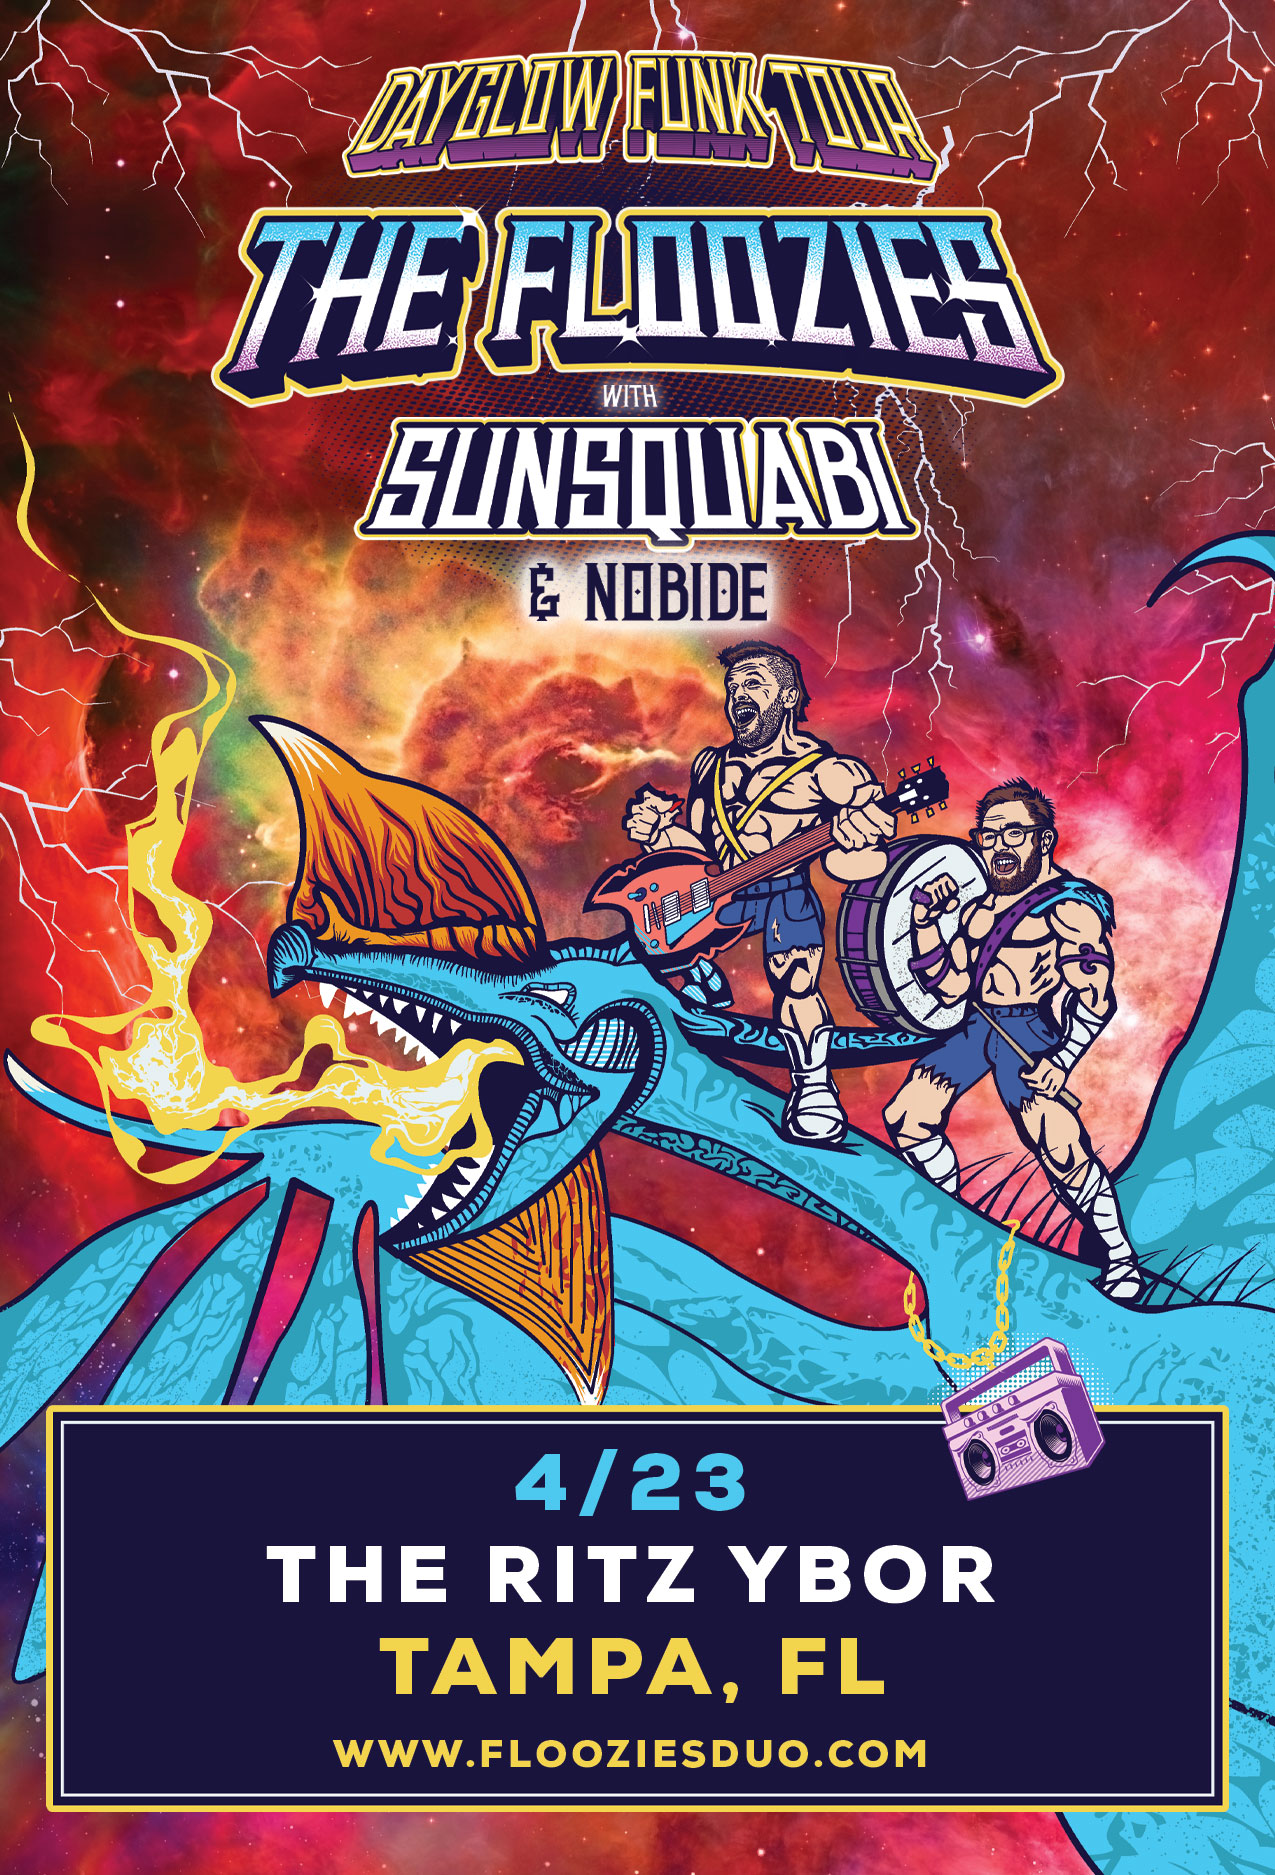 The Floozies – Dayglow Funk Tour with Sunsquabi + Nobide at The RITZ Ybor – 4/23/2020